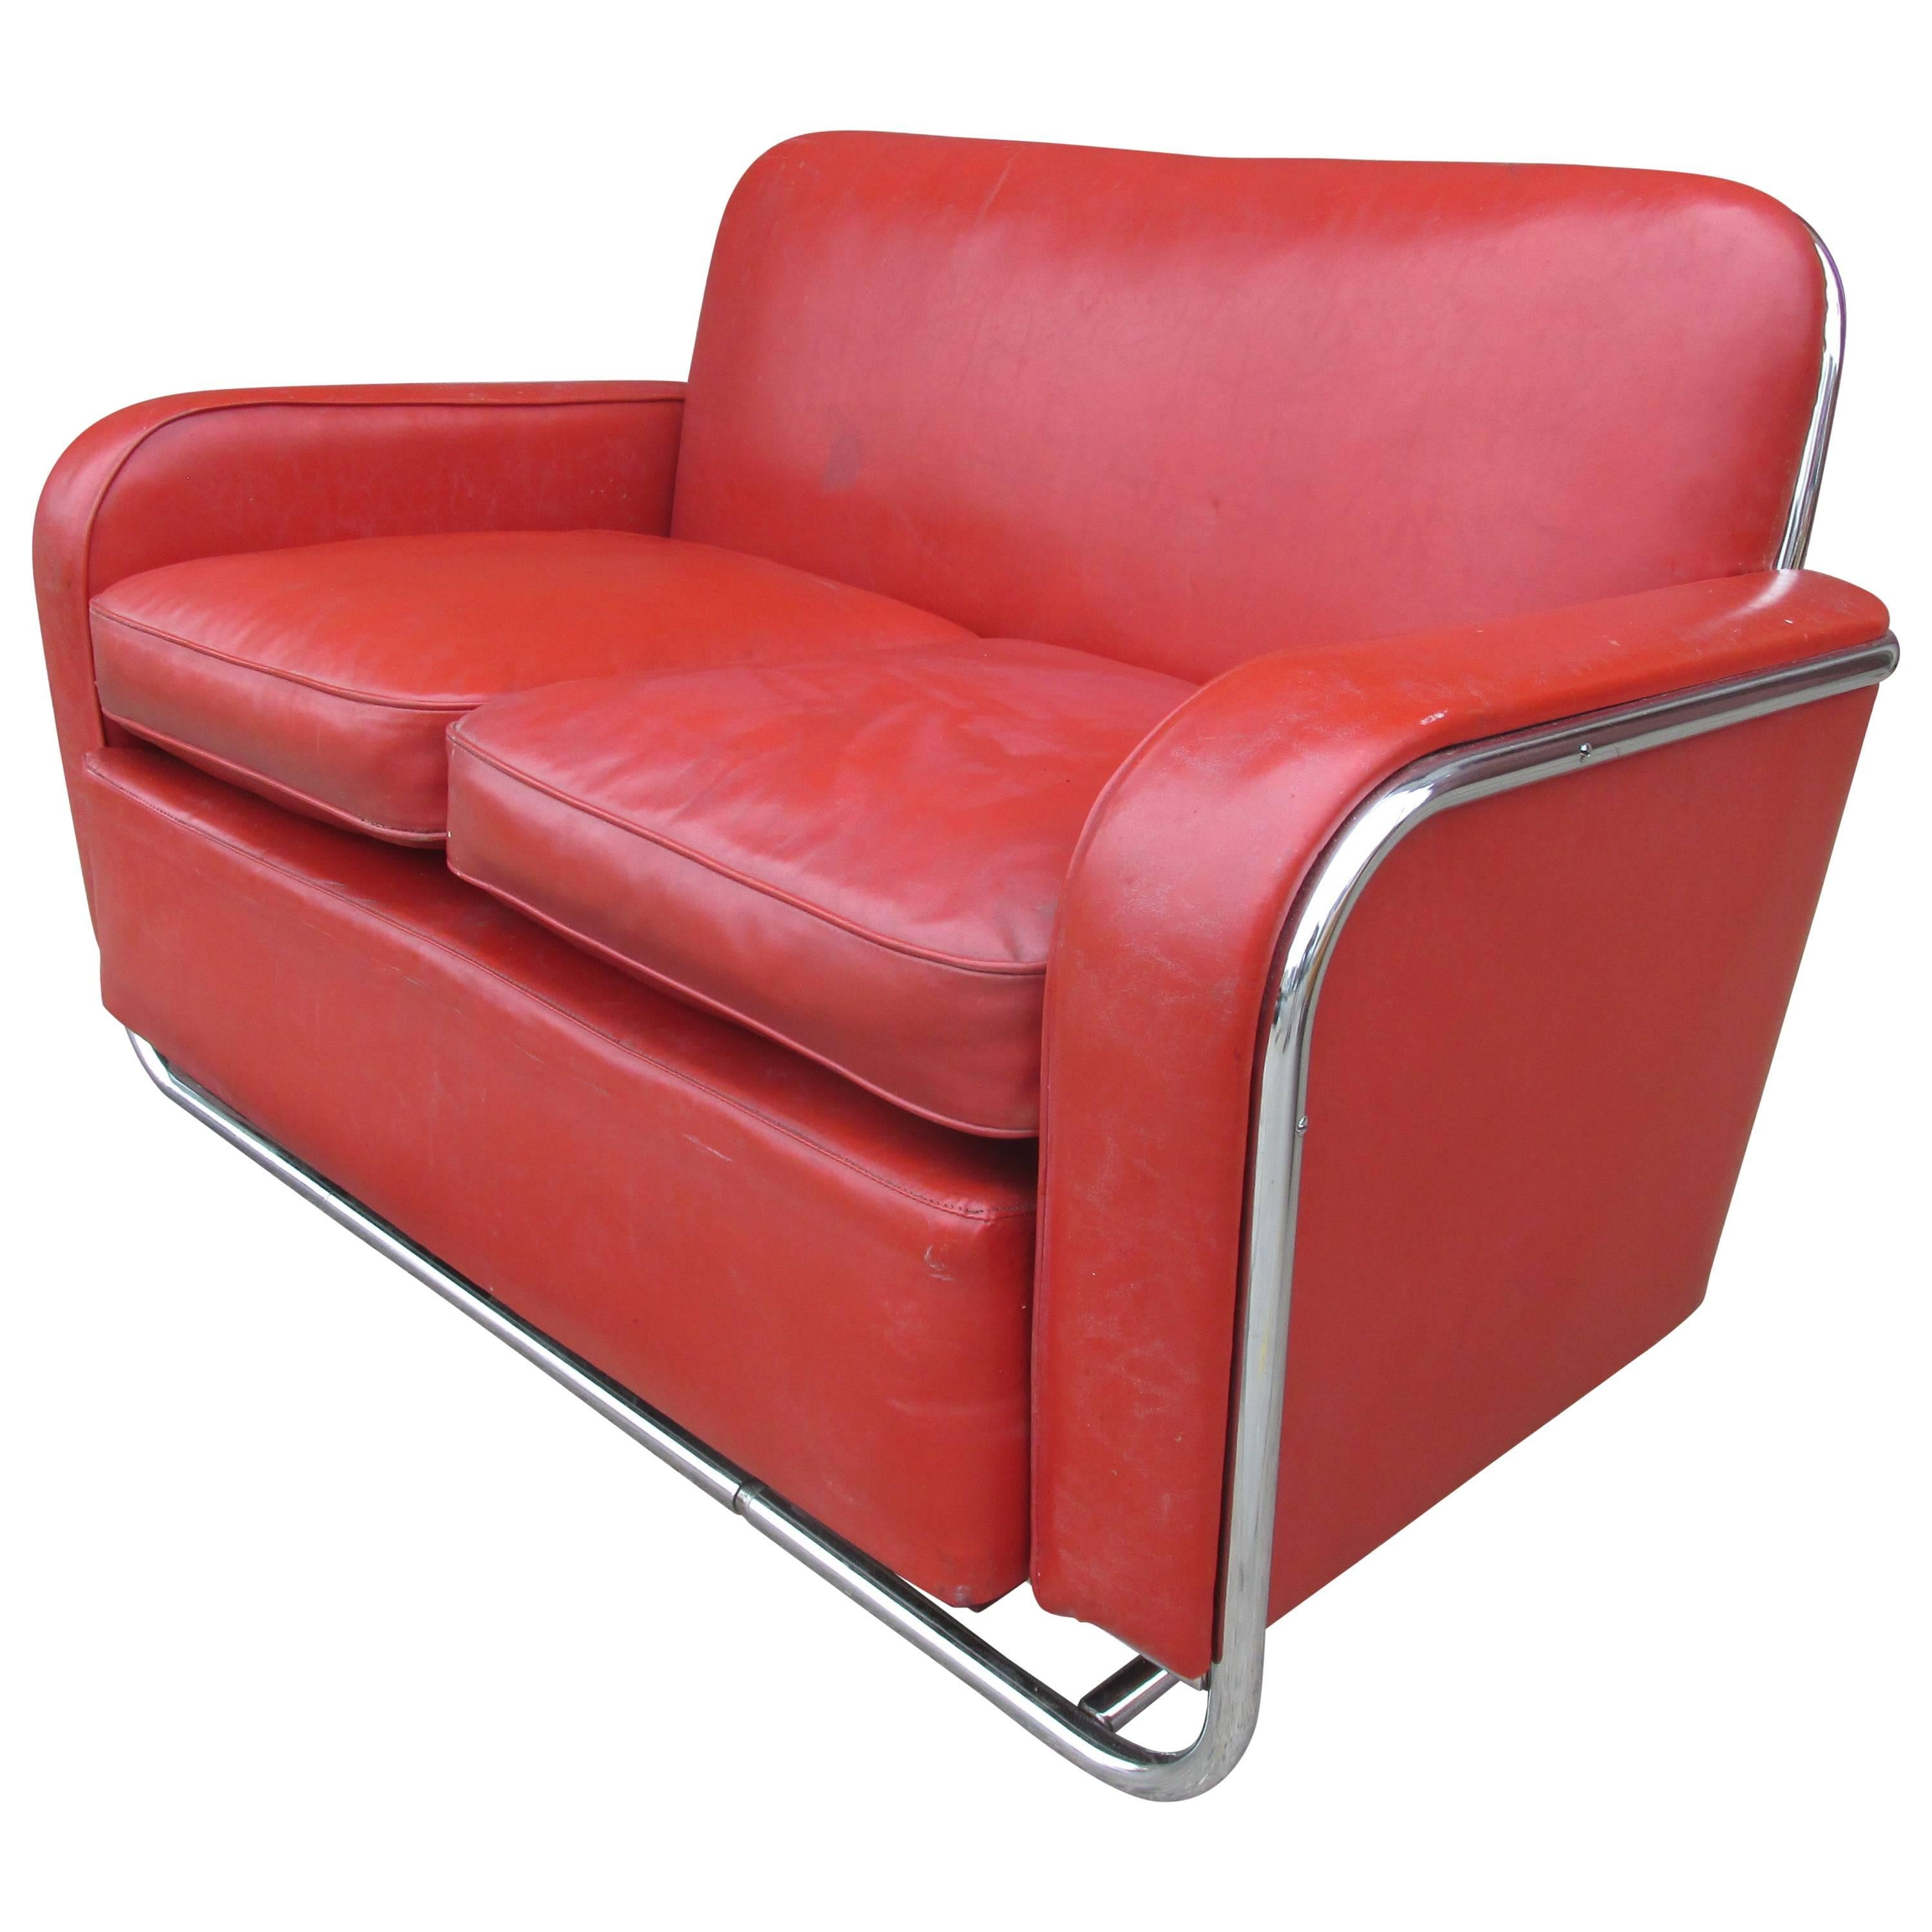 Wolfgang Hoffman For Howell Furniture Loveseat For Sale